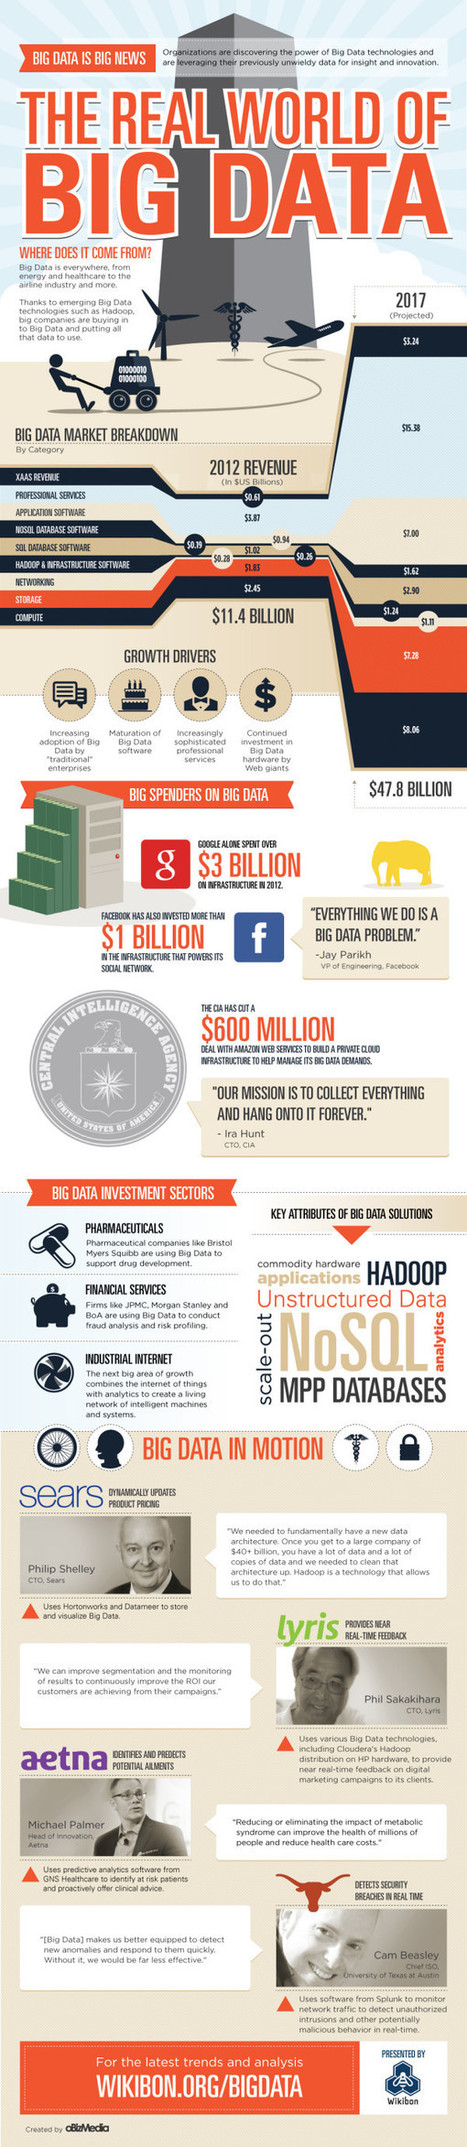 The real world of big data [infographic] | Digital happenings | Scoop.it